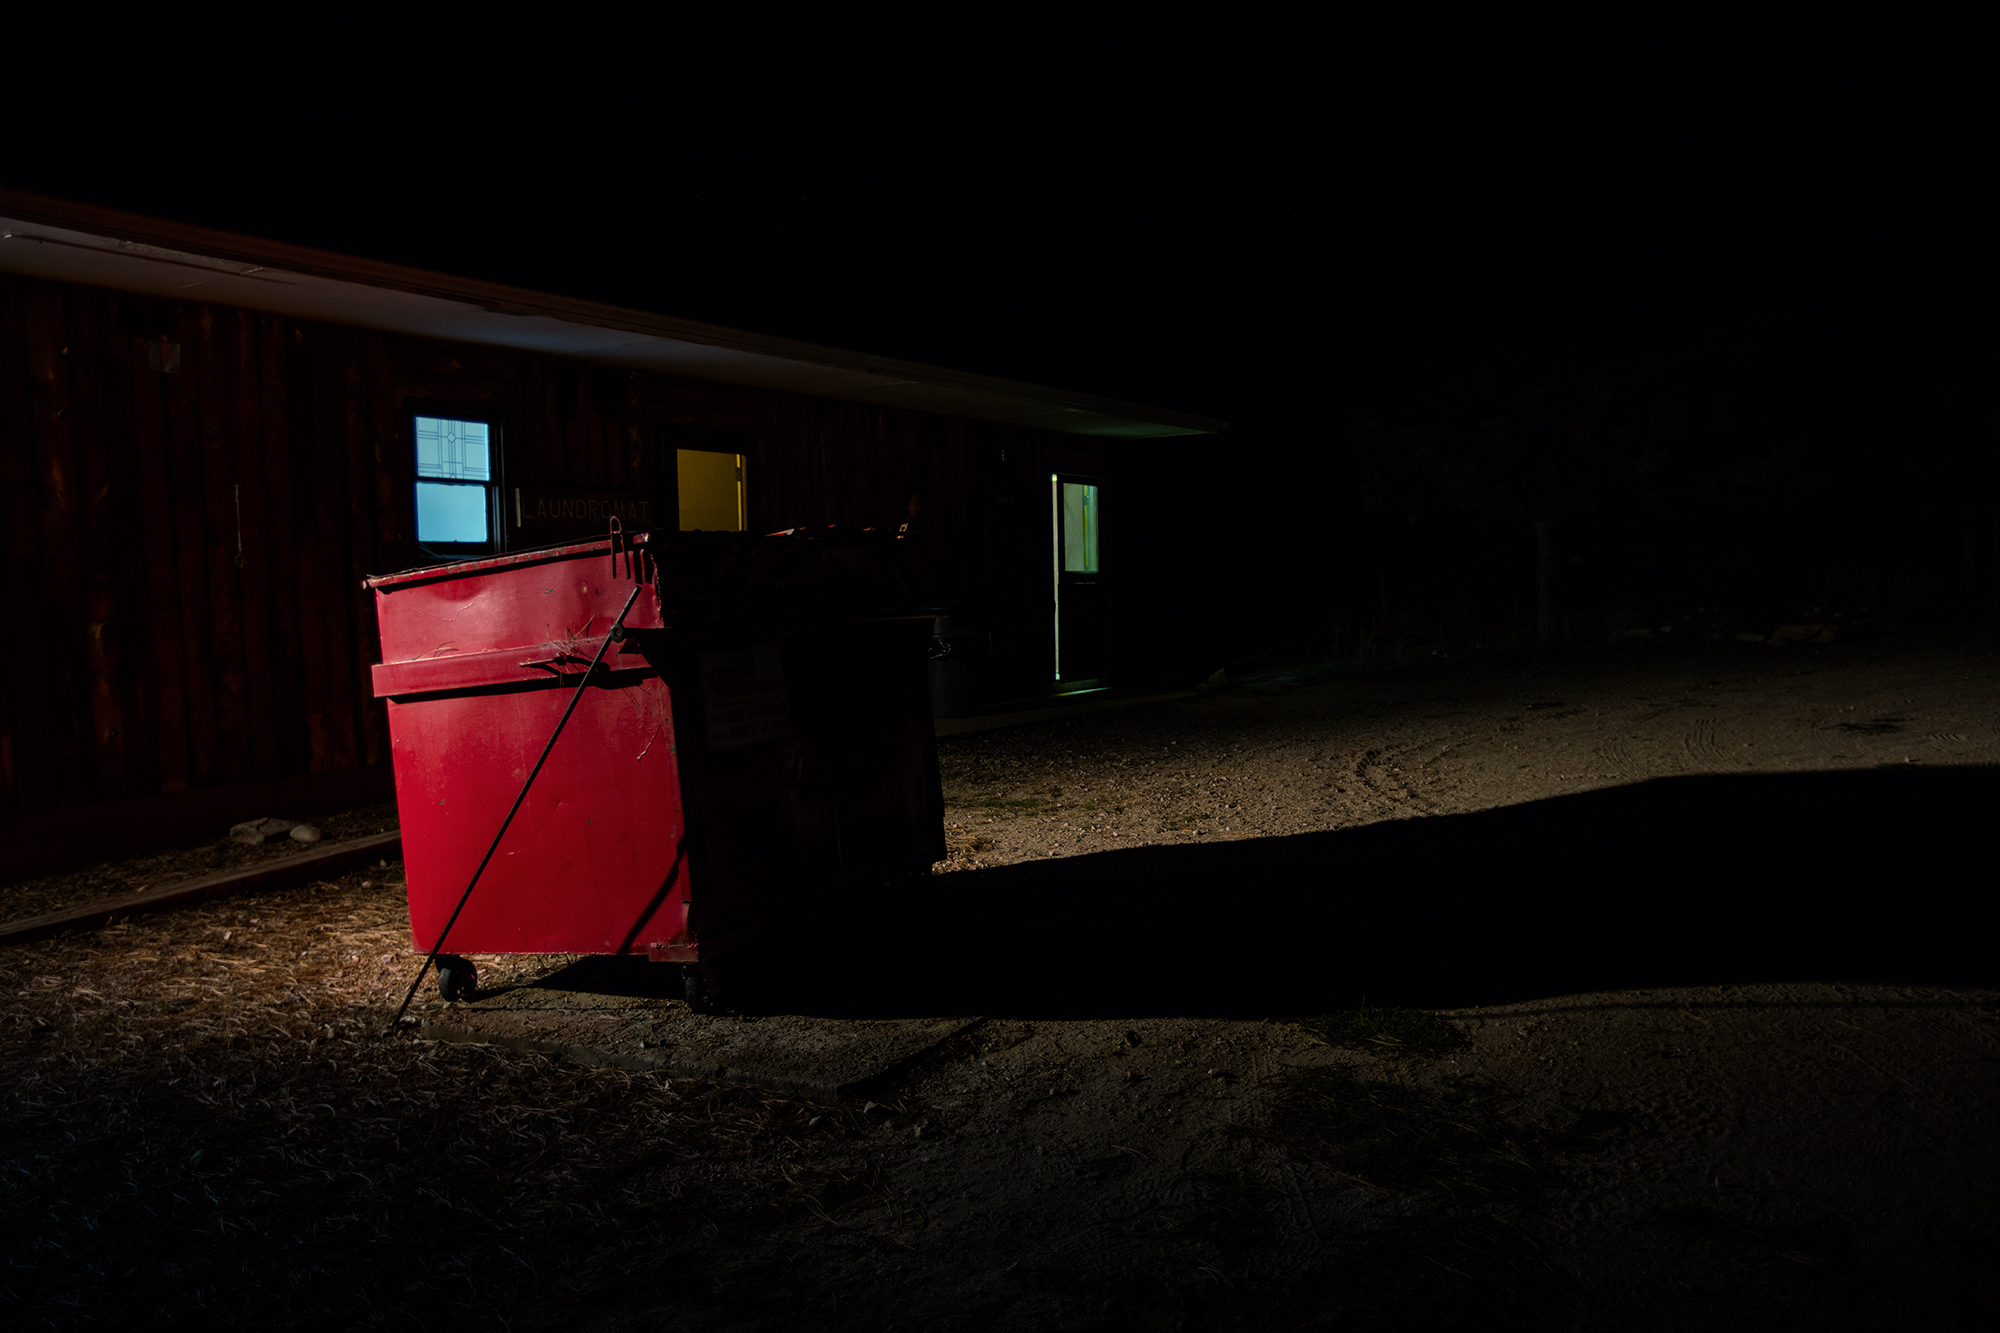 Remi Thornton, Red Dumpster. From JCC Ranch. Courtesy of Remi Thornton.